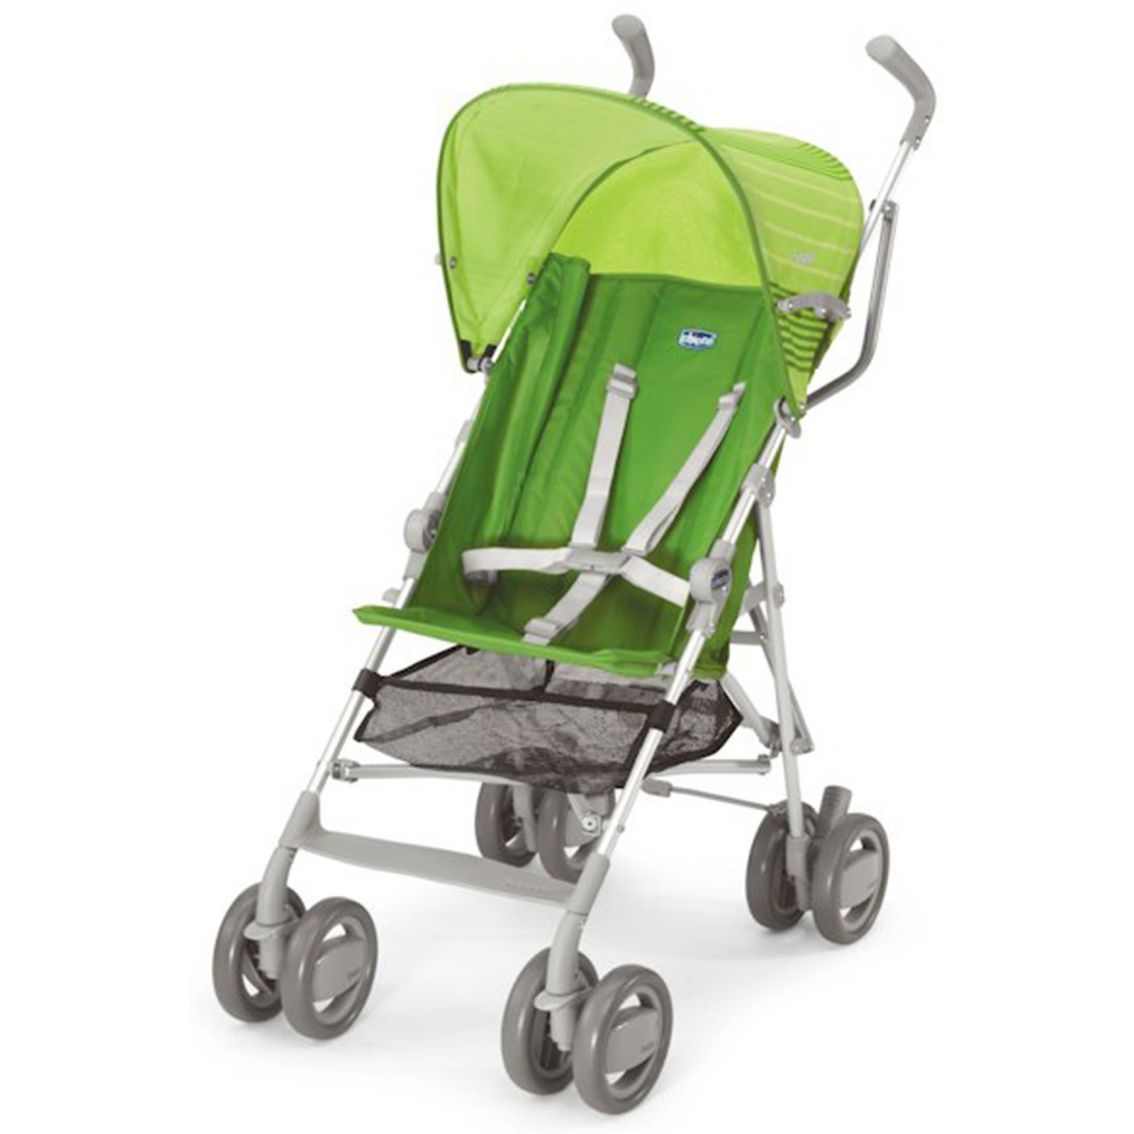 98 reference of chicco stroller grey and green in 2020